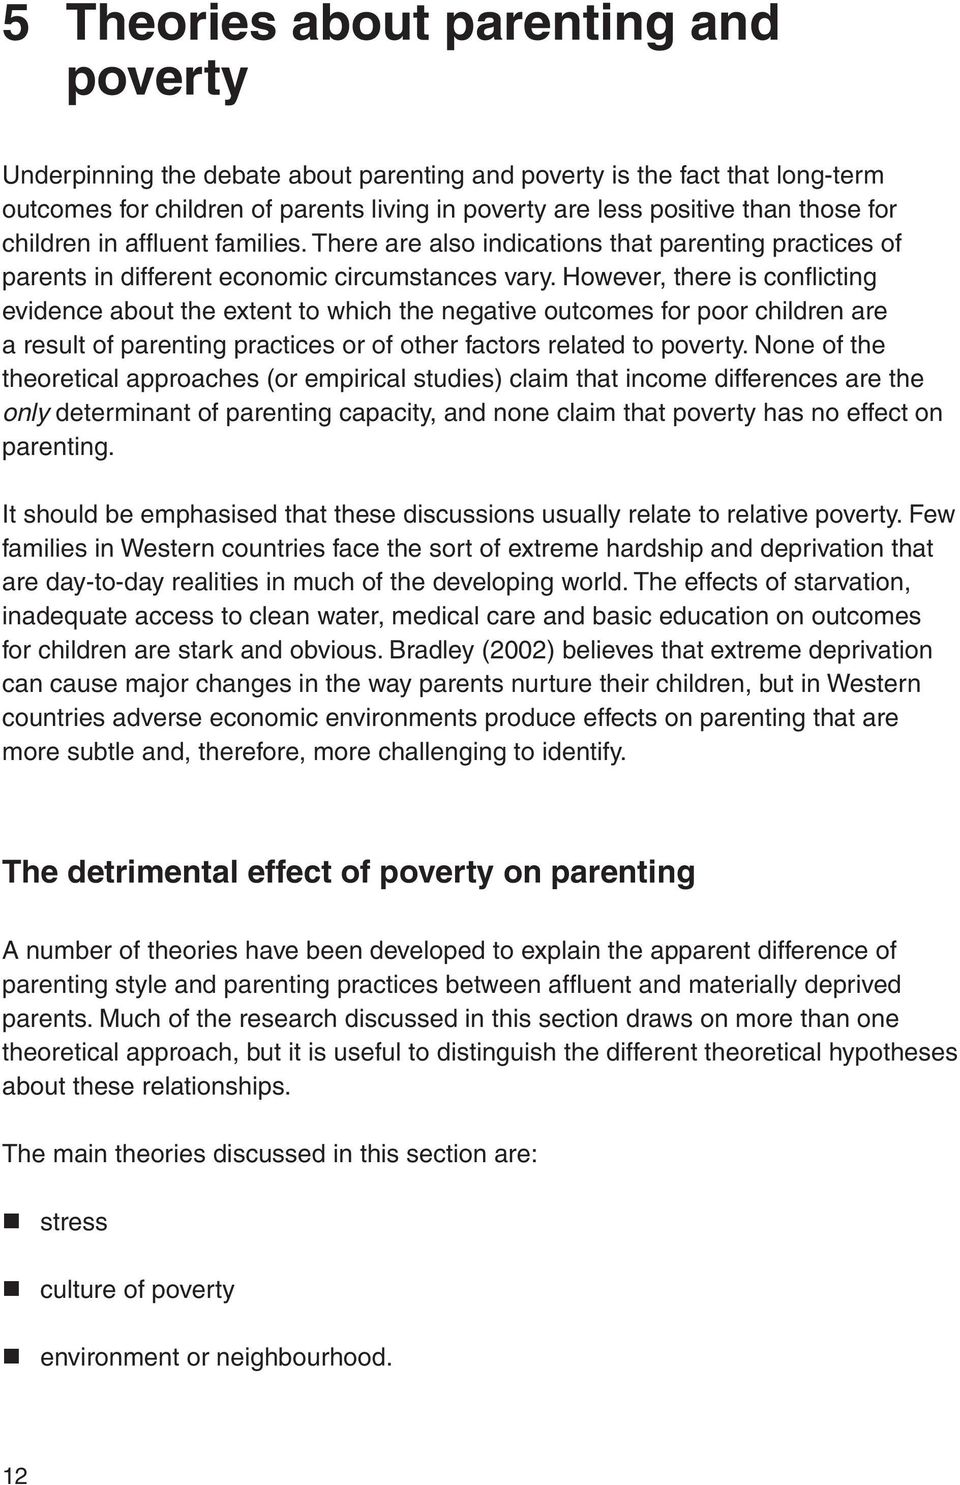 However, there is confl icting evidence about the extent to which the negative outcomes for poor children are a result of parenting practices or of other factors related to poverty.